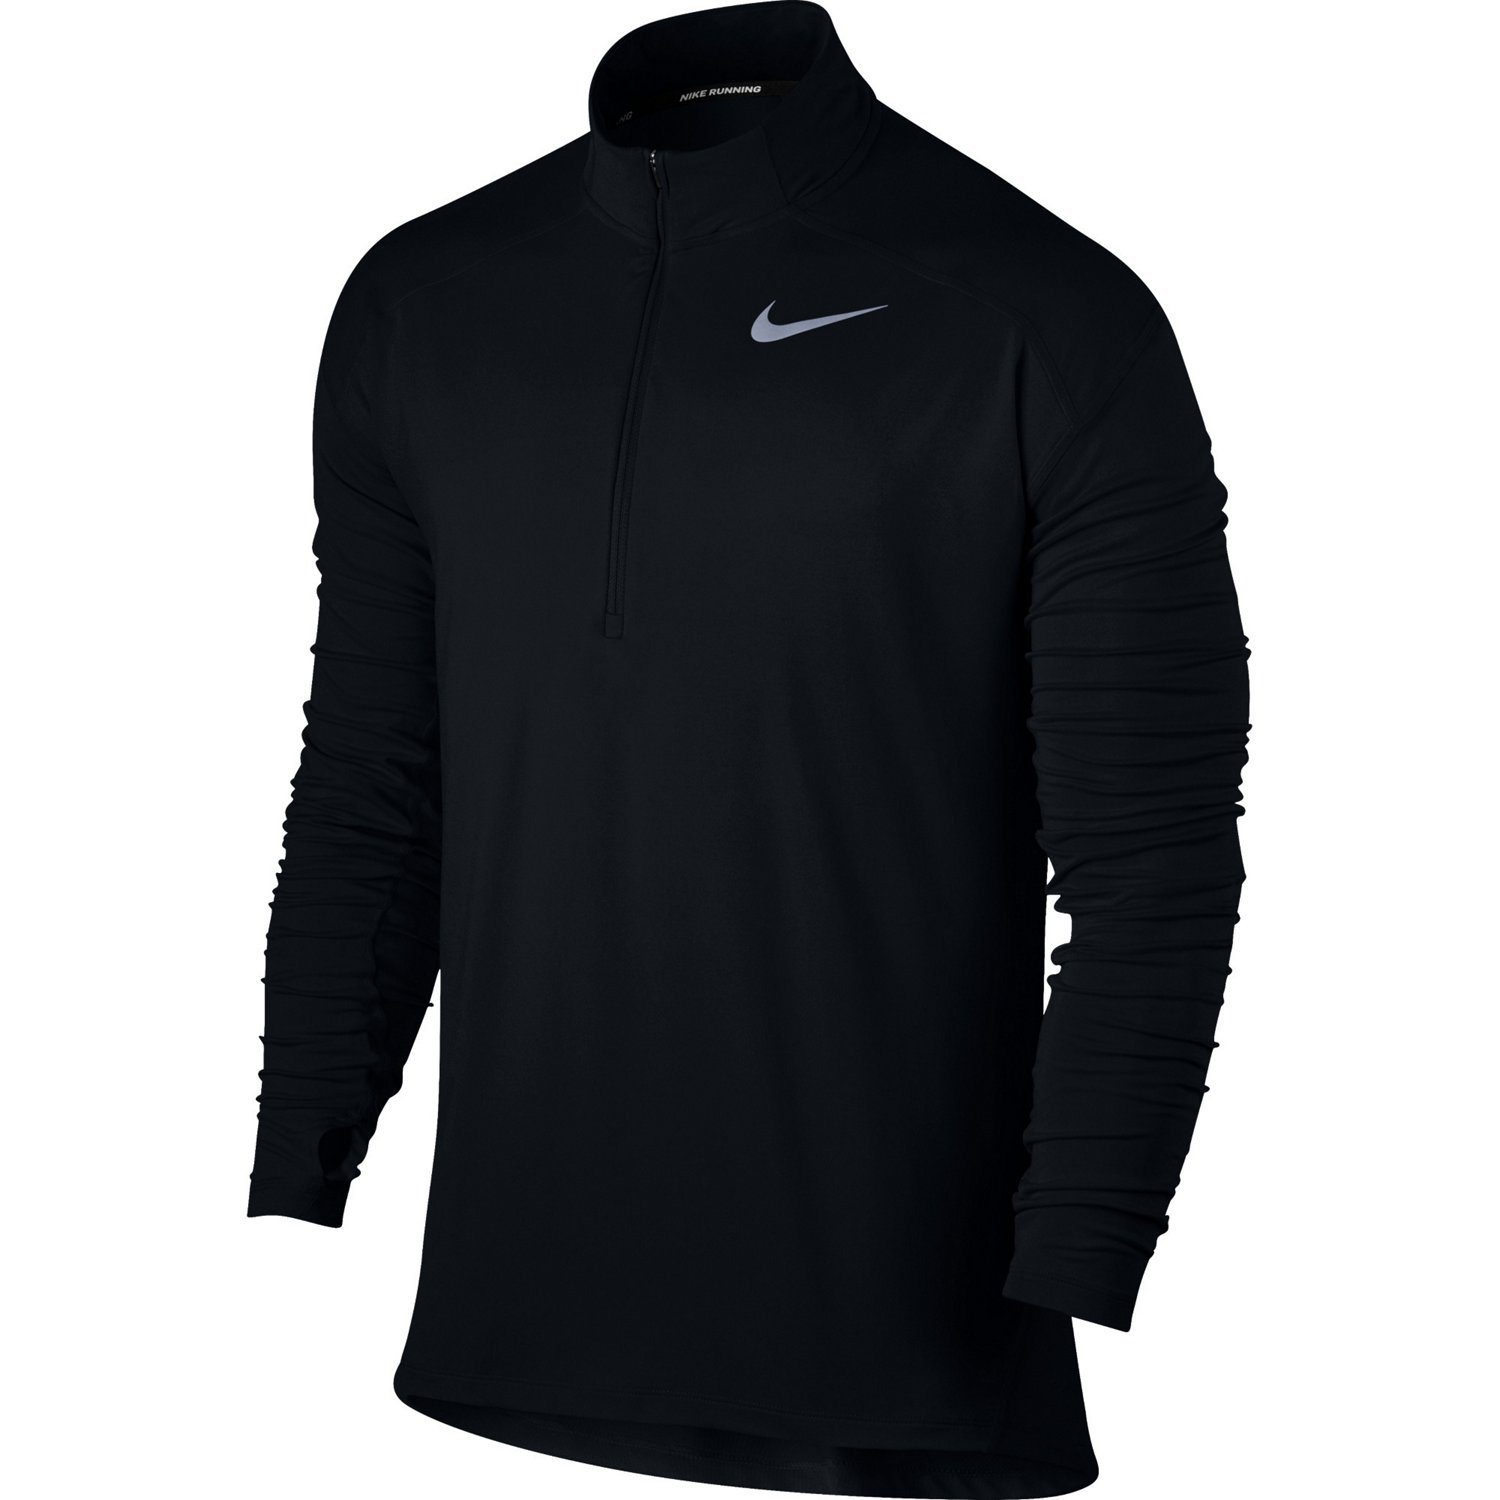 Display product reviews for Nike Men s Dry Element Running Top b9d6666dcd31a